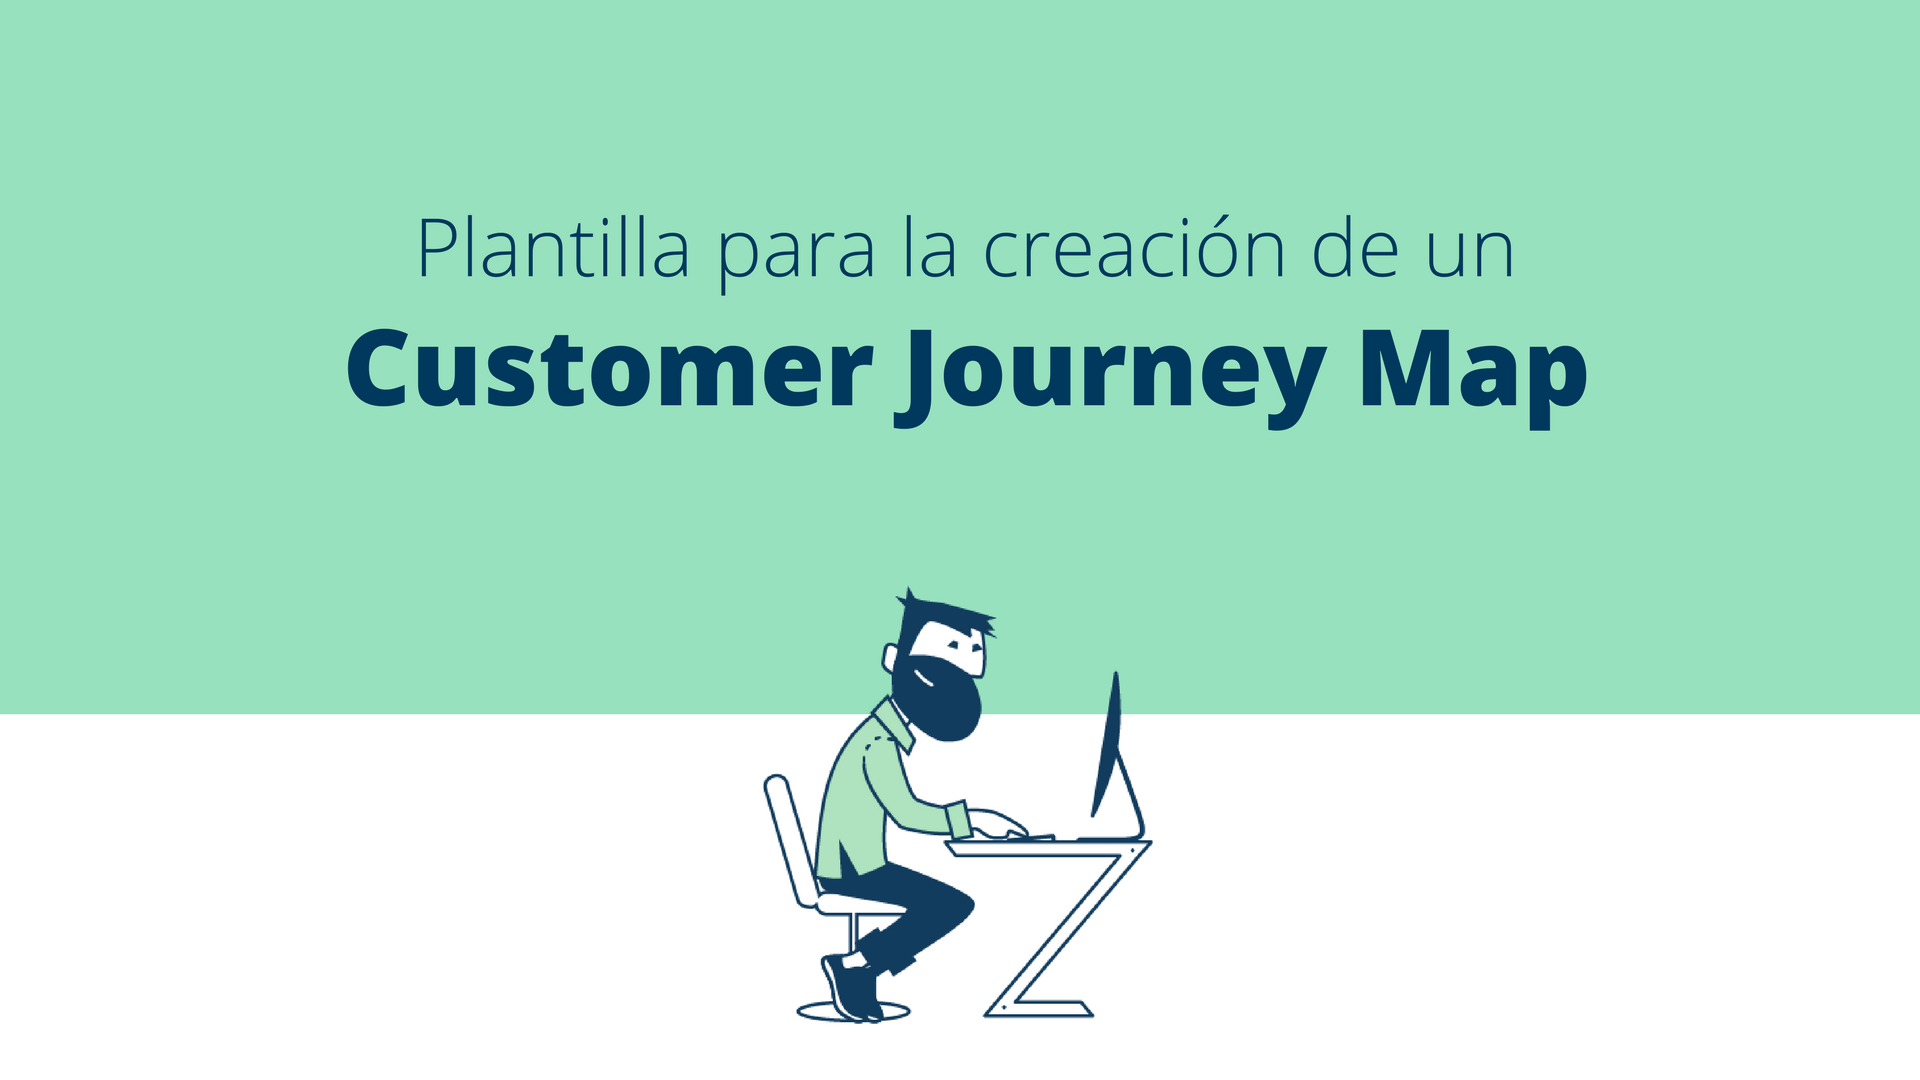 Plantilla de un Customer Journey map